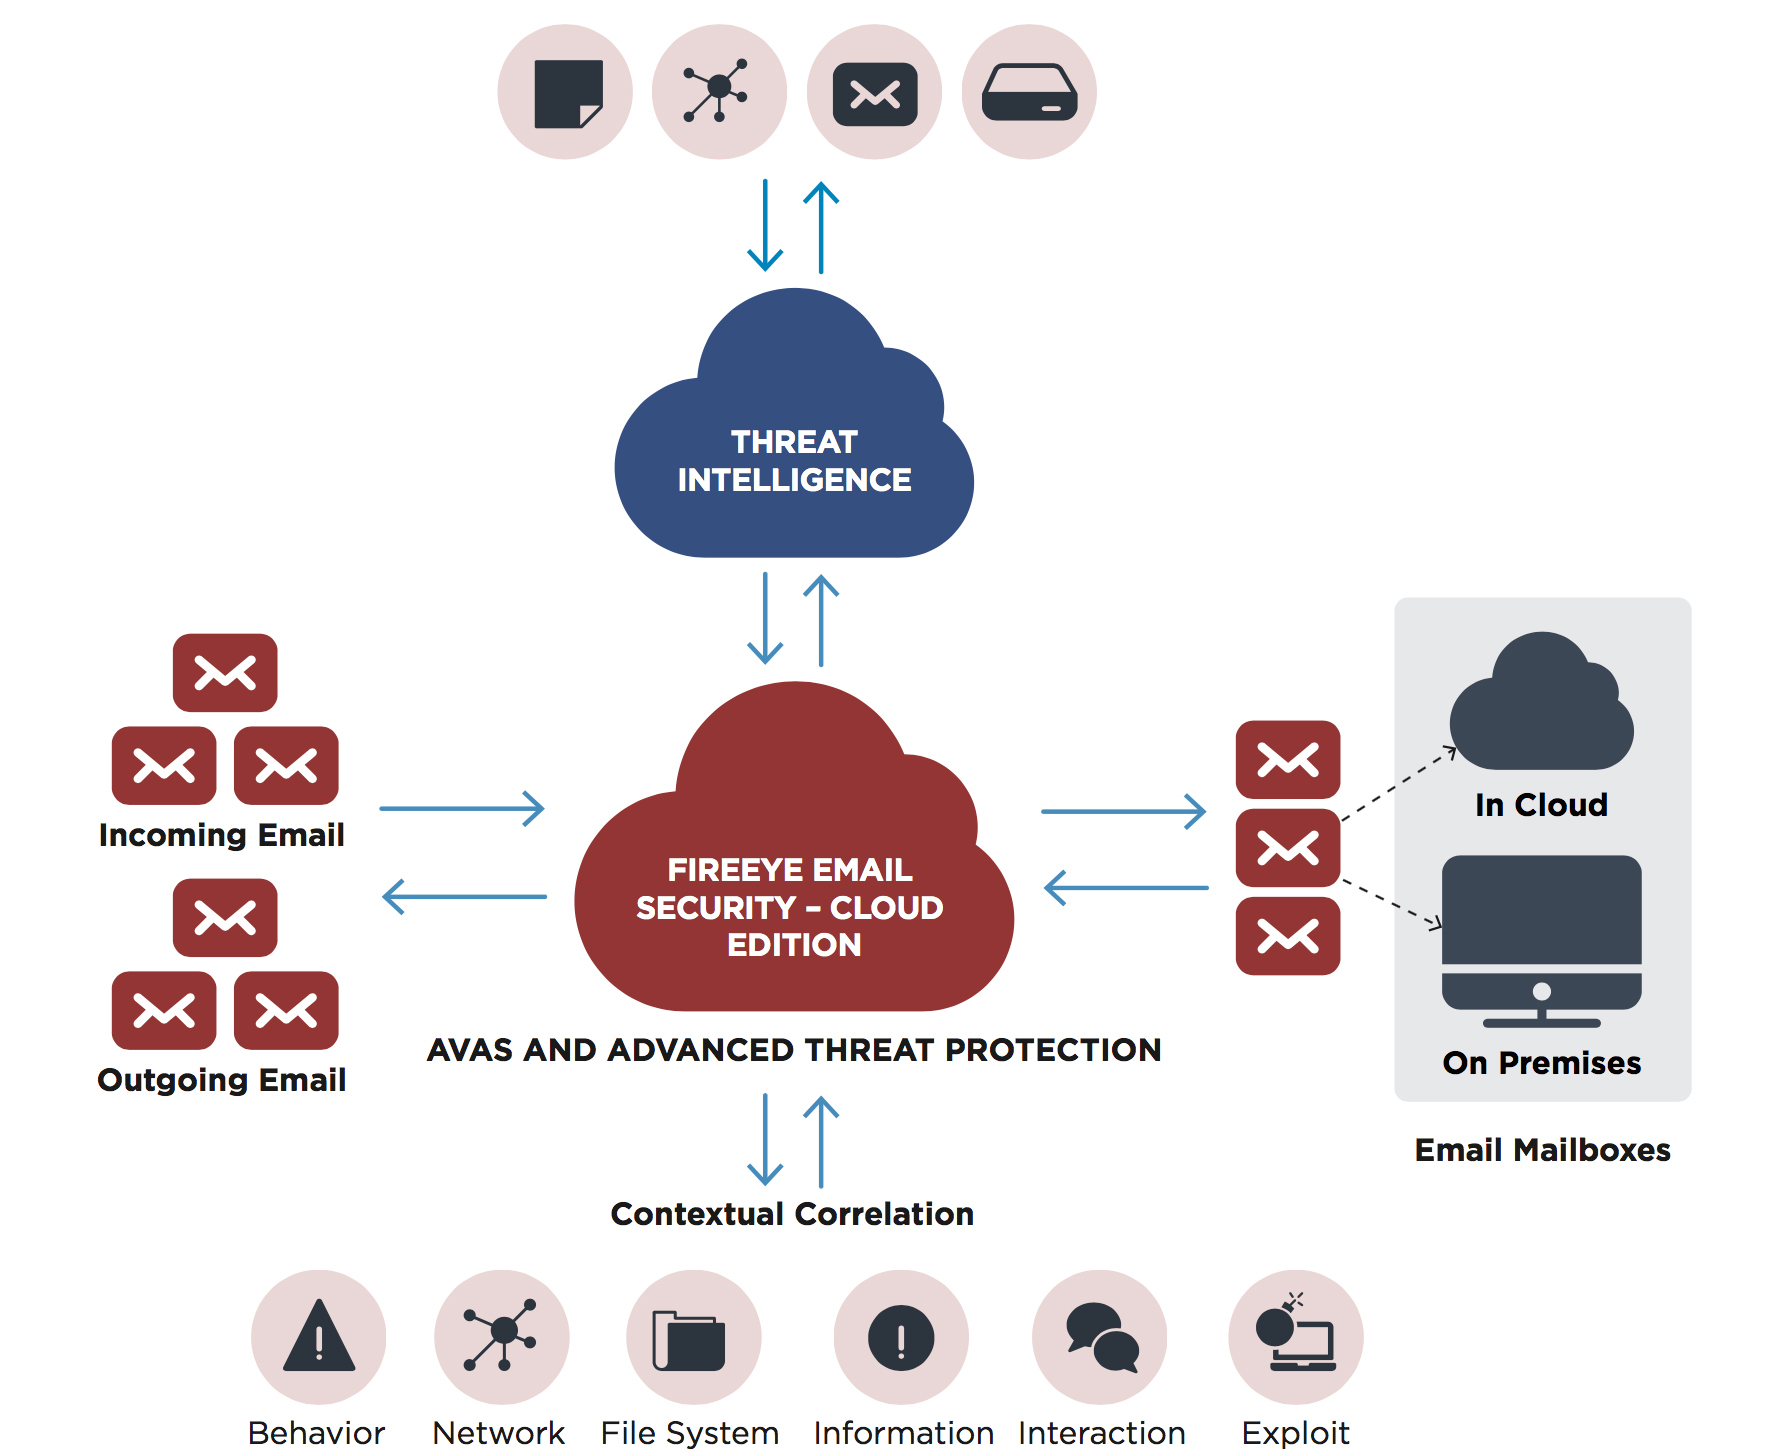 FireEye Secure Email Gateway Protects Against Threats Others